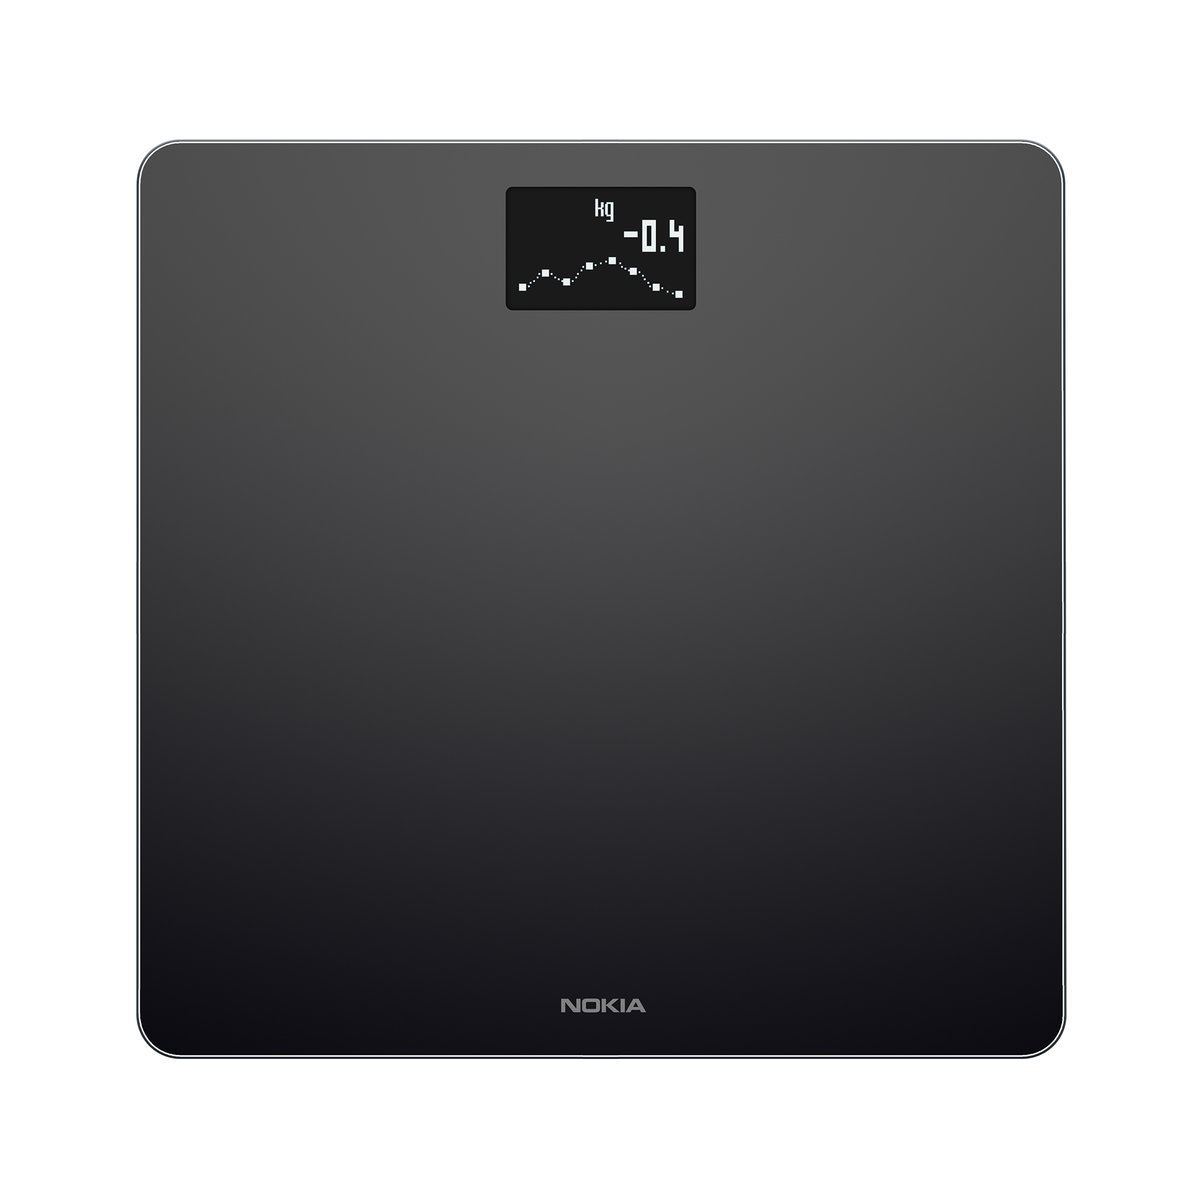 Image of Nokia Body - Weight and BMI Wi-Fi Smart Scale - Black